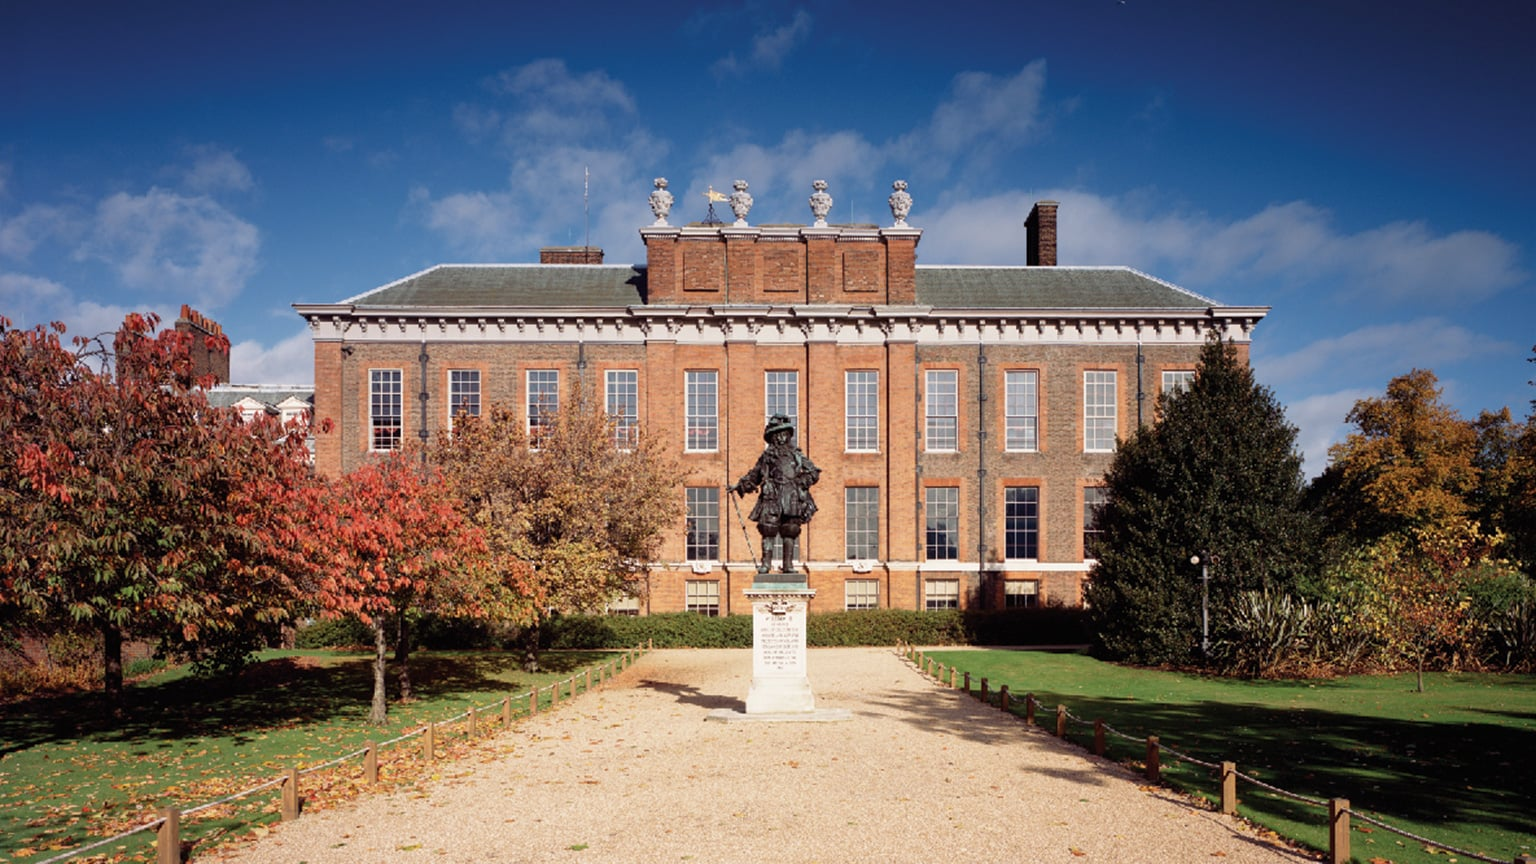 Exterior Of Kensington Palace